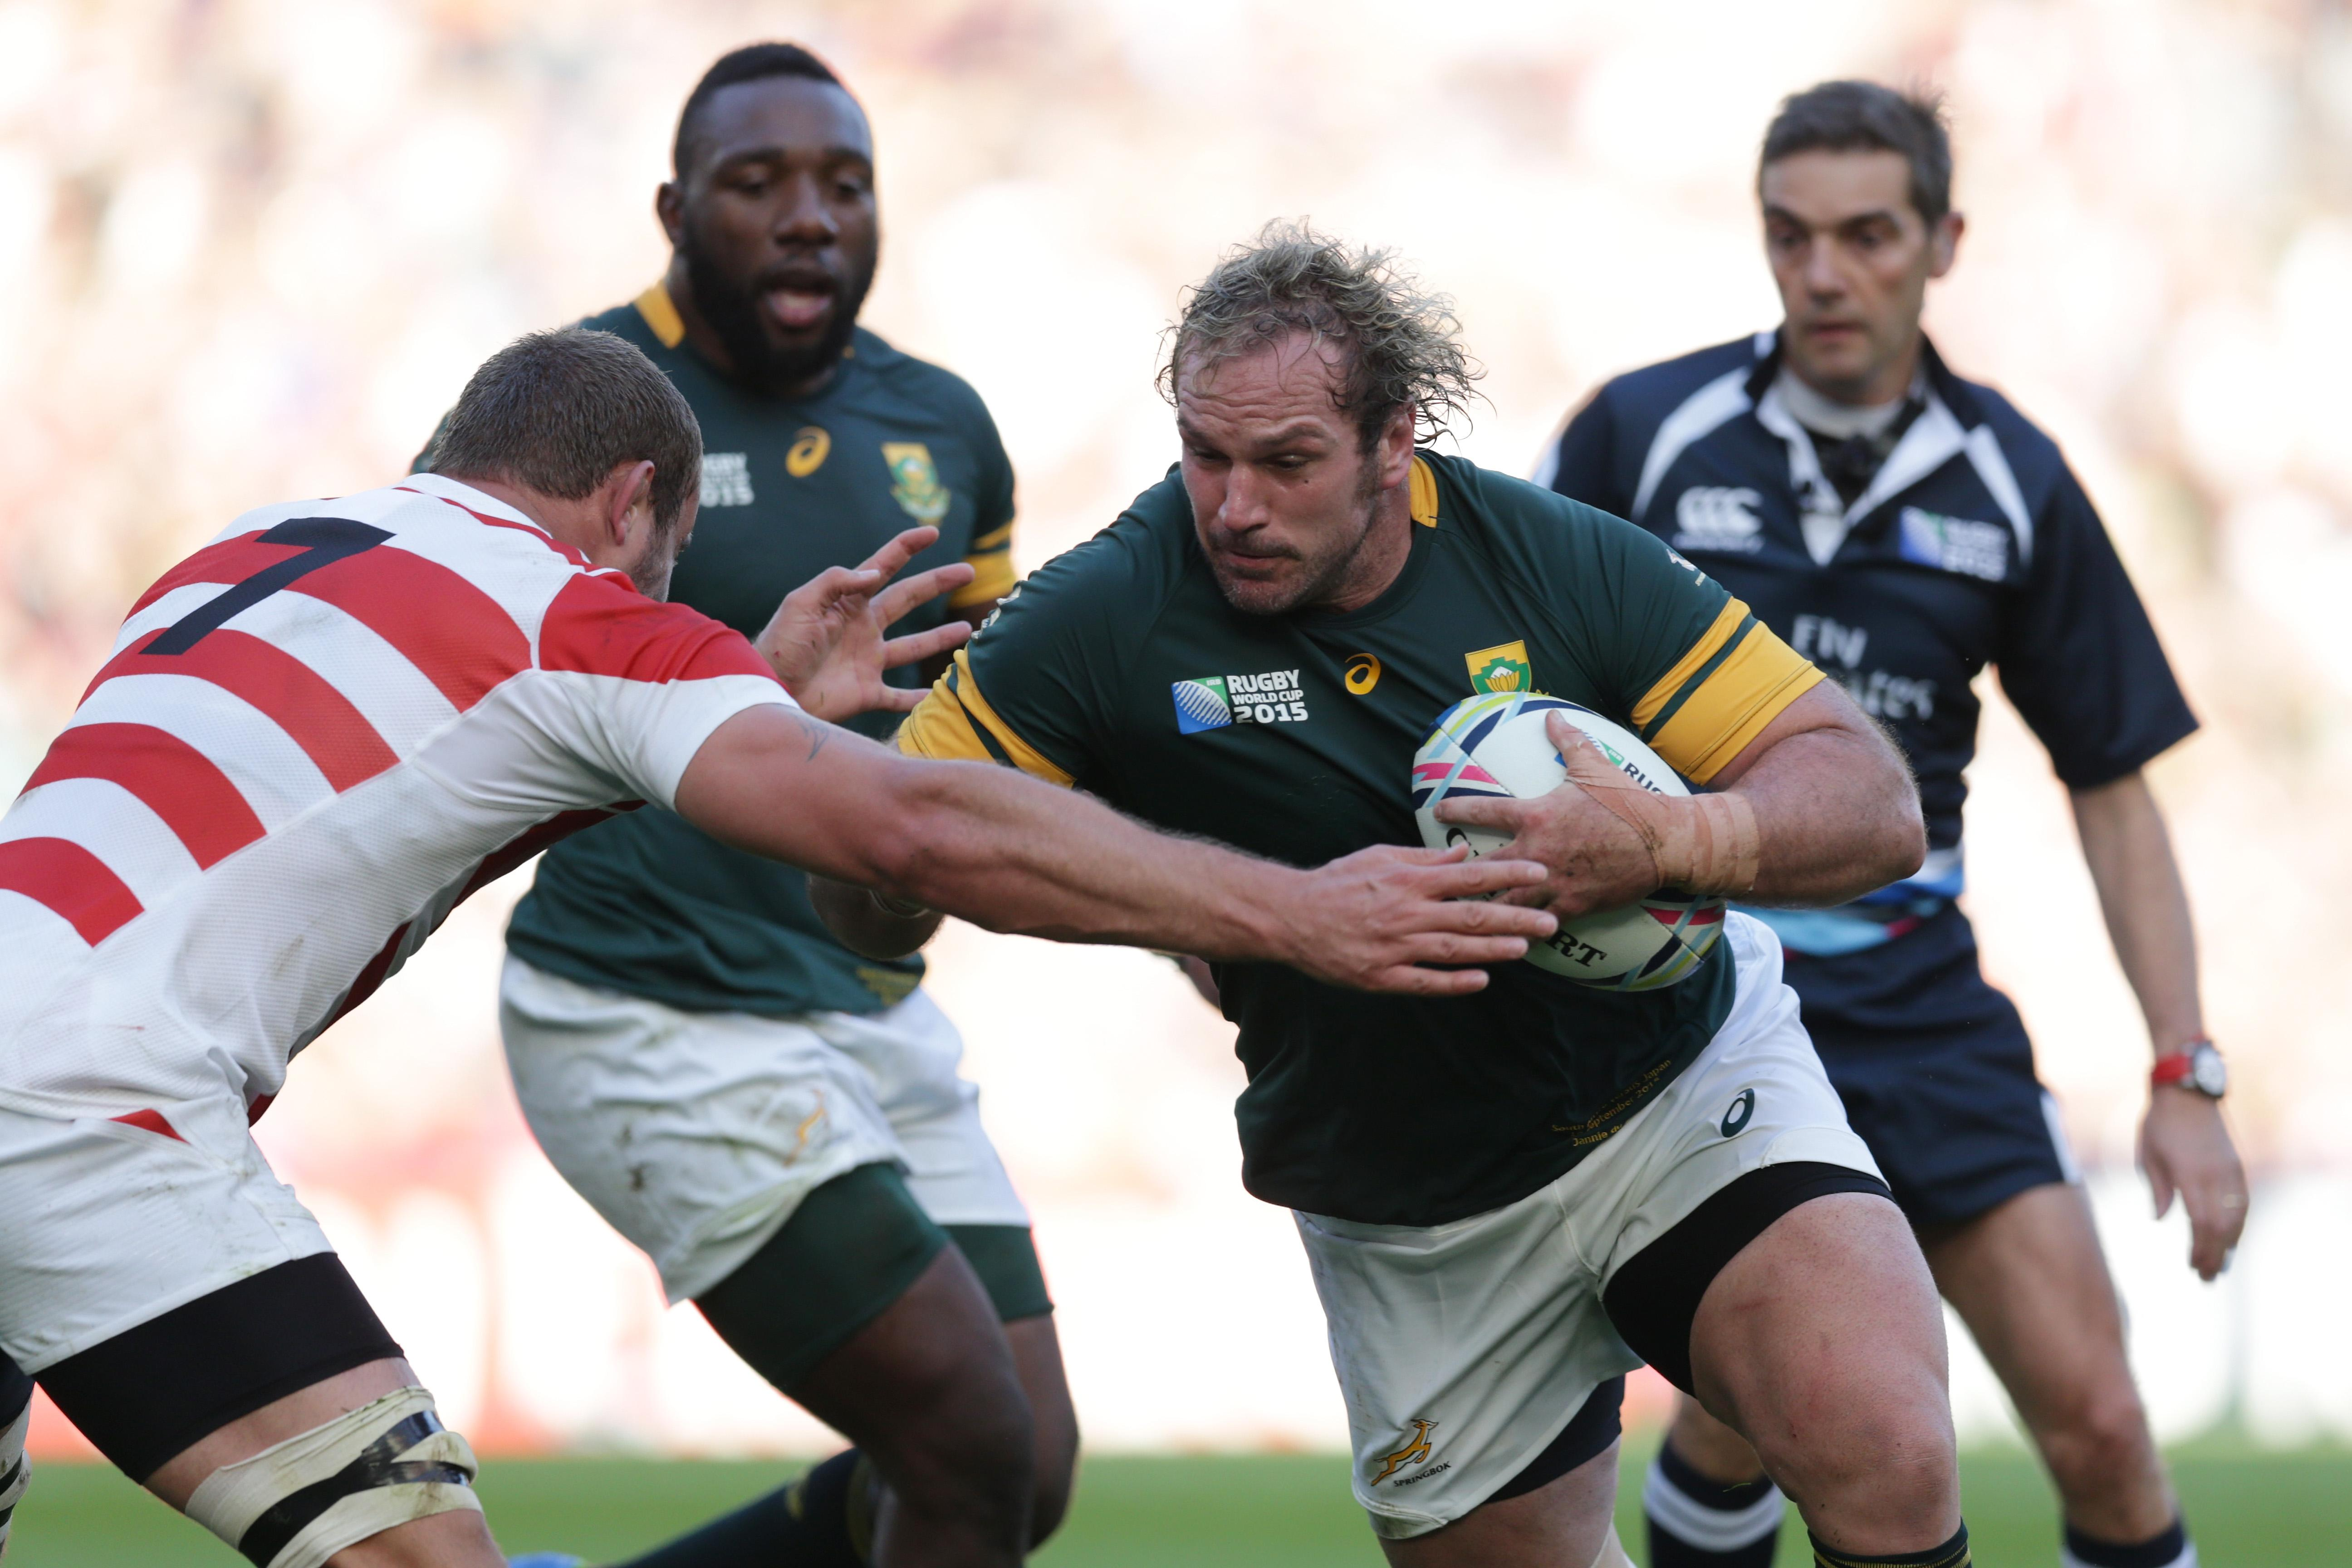 Fear a mistake against the All Blacks and you will make one, warns Springbok Jannie du Plessis